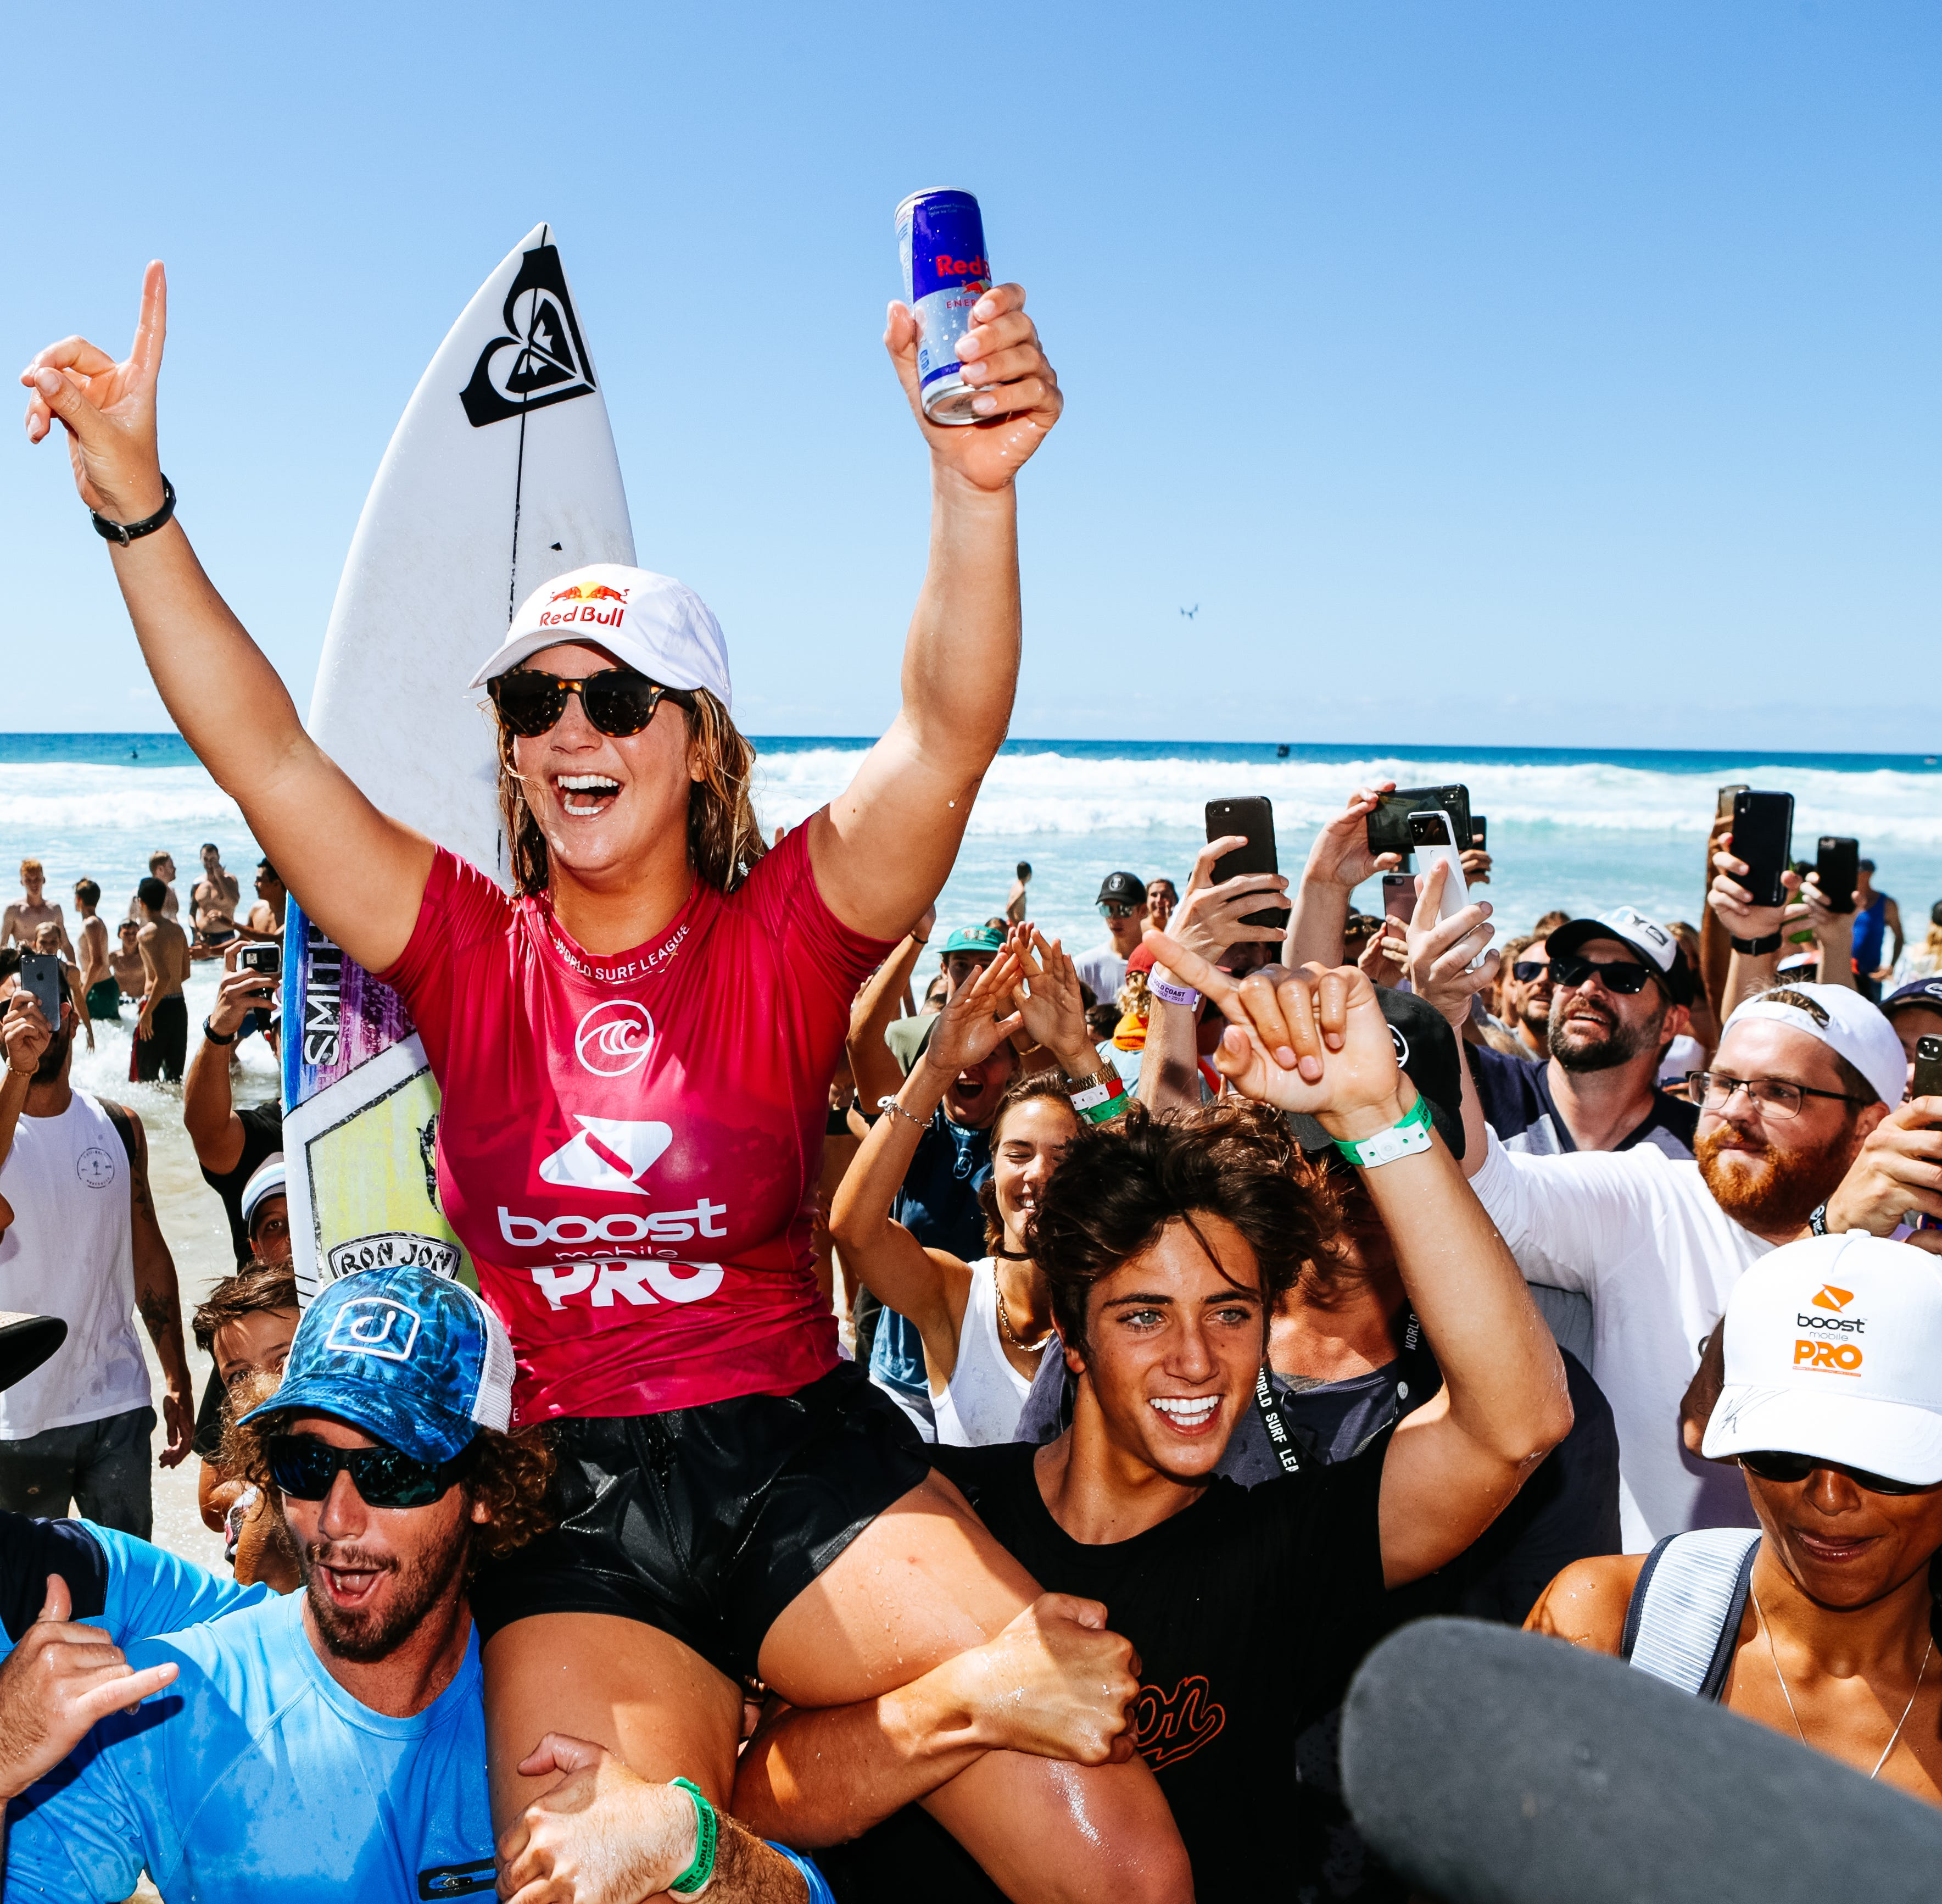 17-year-old Melbourne Beach native wins $100K in surfing contest, ranked No. 1 in world